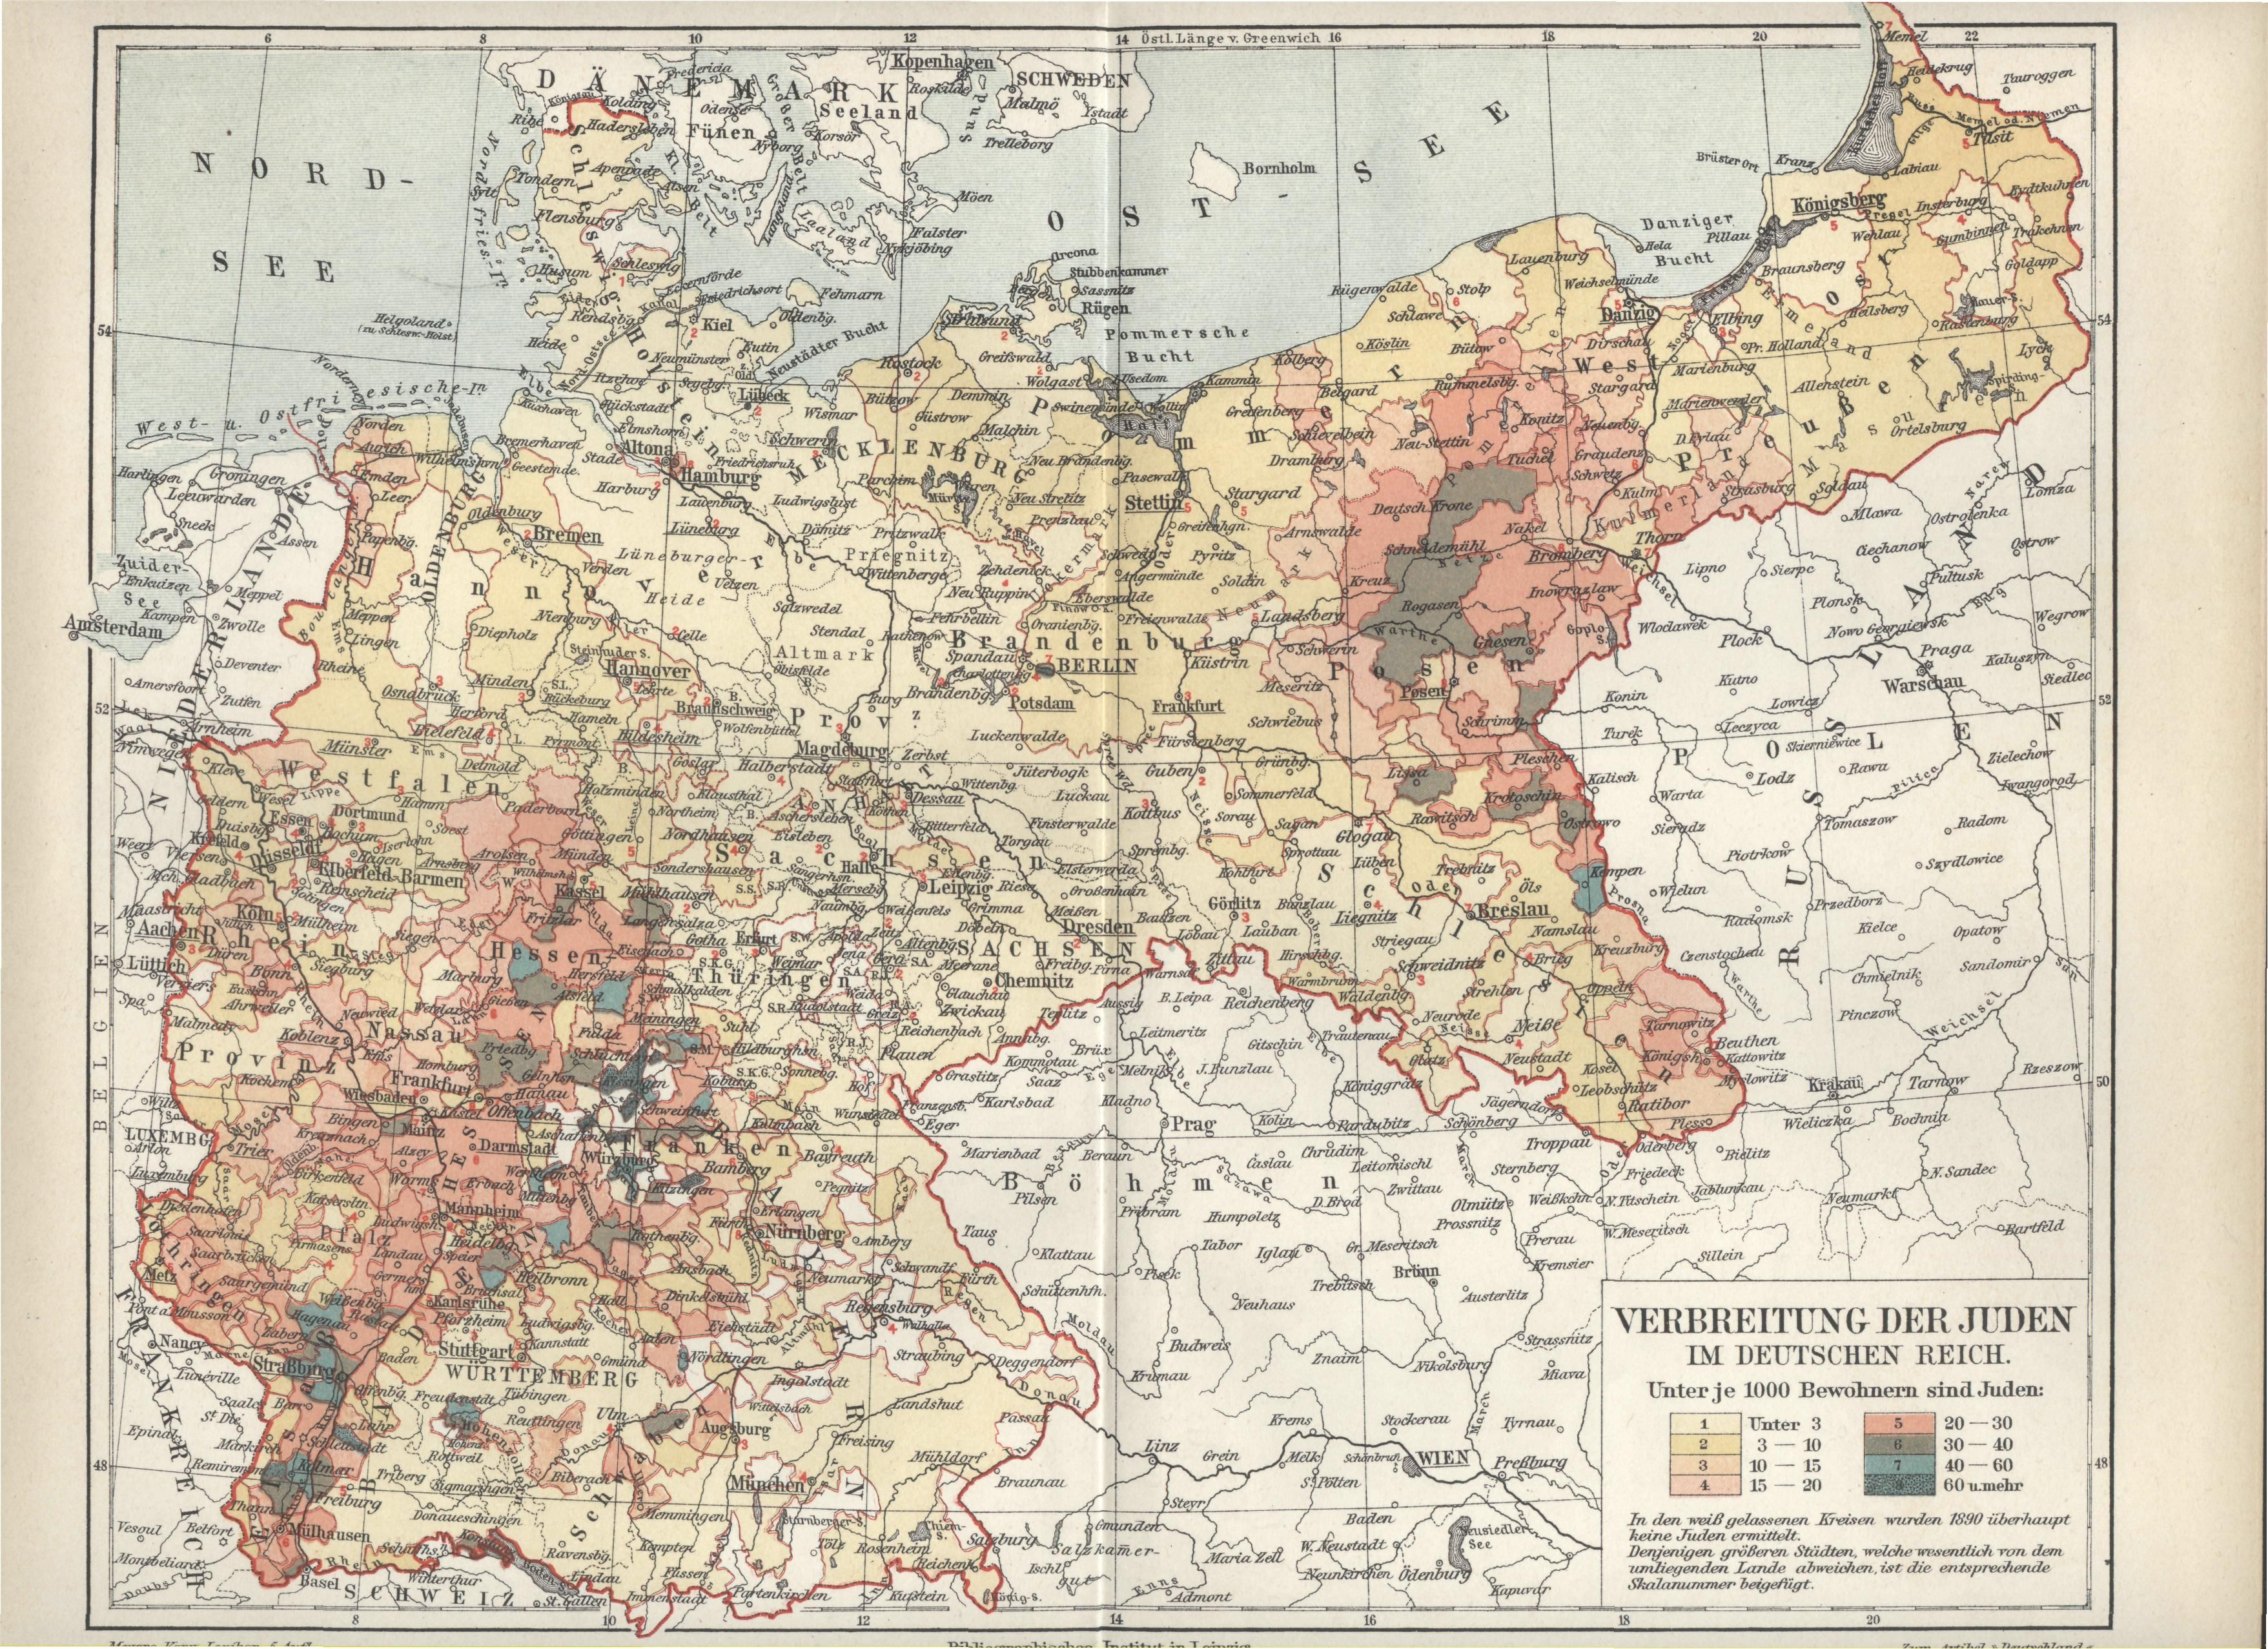 Map From The 1890s That Illustrates The Distribution Of Jews In